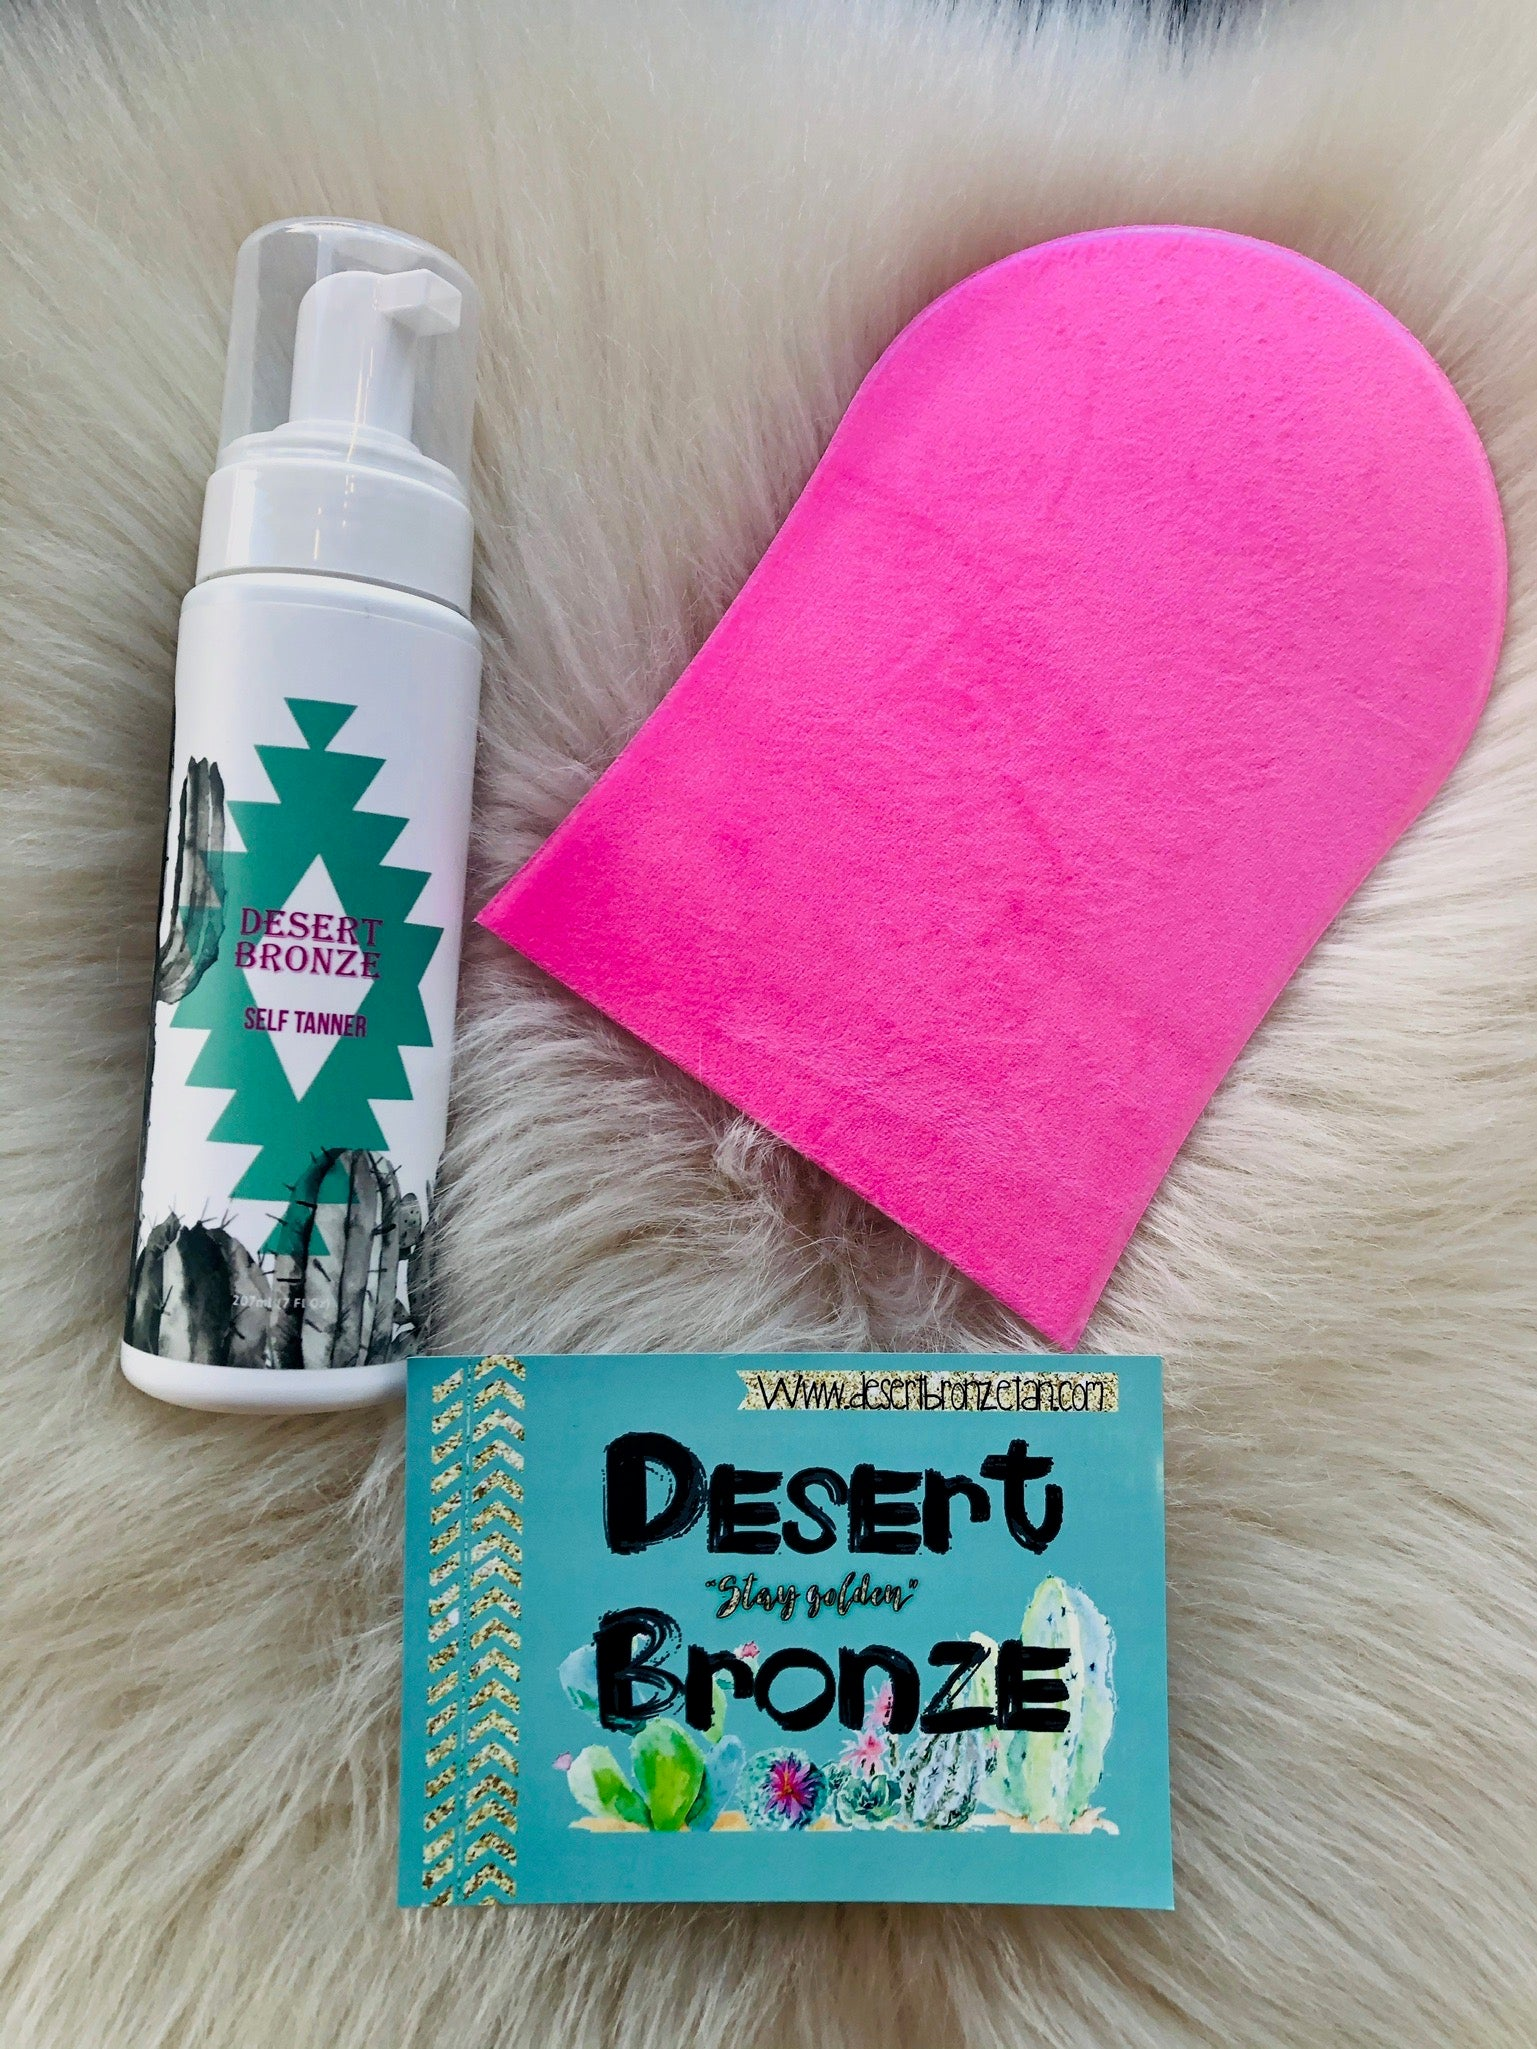 Desert Bronze Self Tanner Mousse